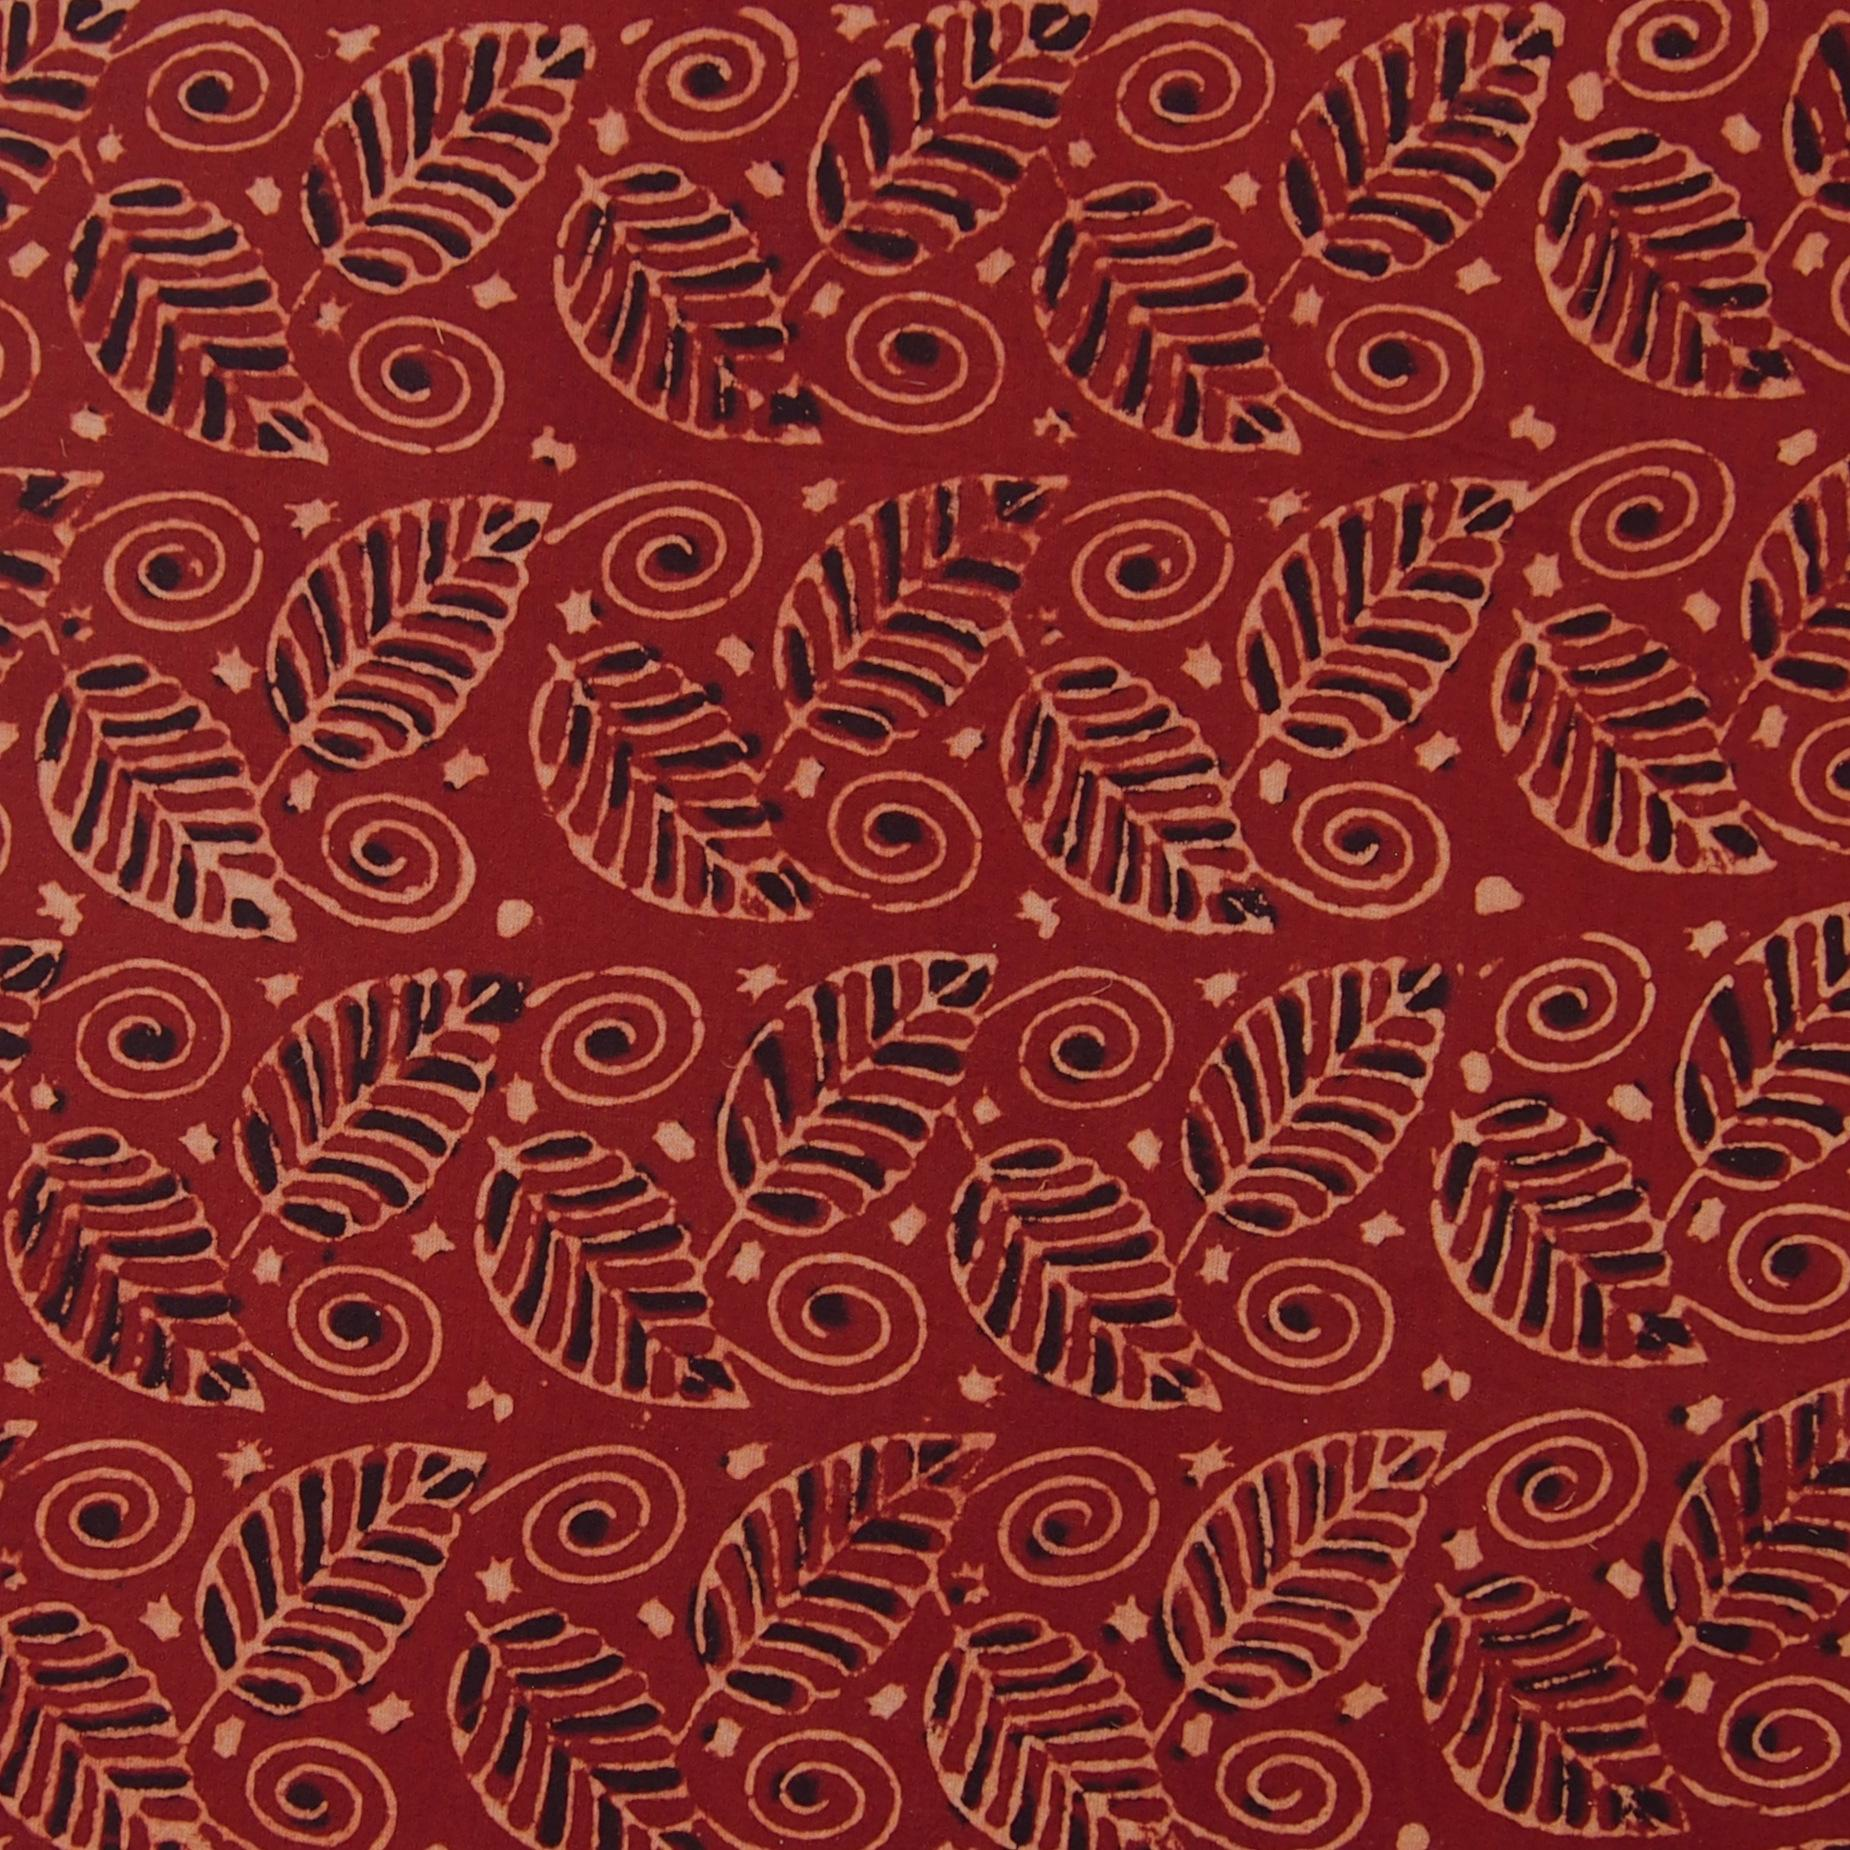 Block Printed Fabric, 100% Cotton, Ajrak Design: Red Madder Root Base, Black, Beige Foliage. Close Up, Sold Out